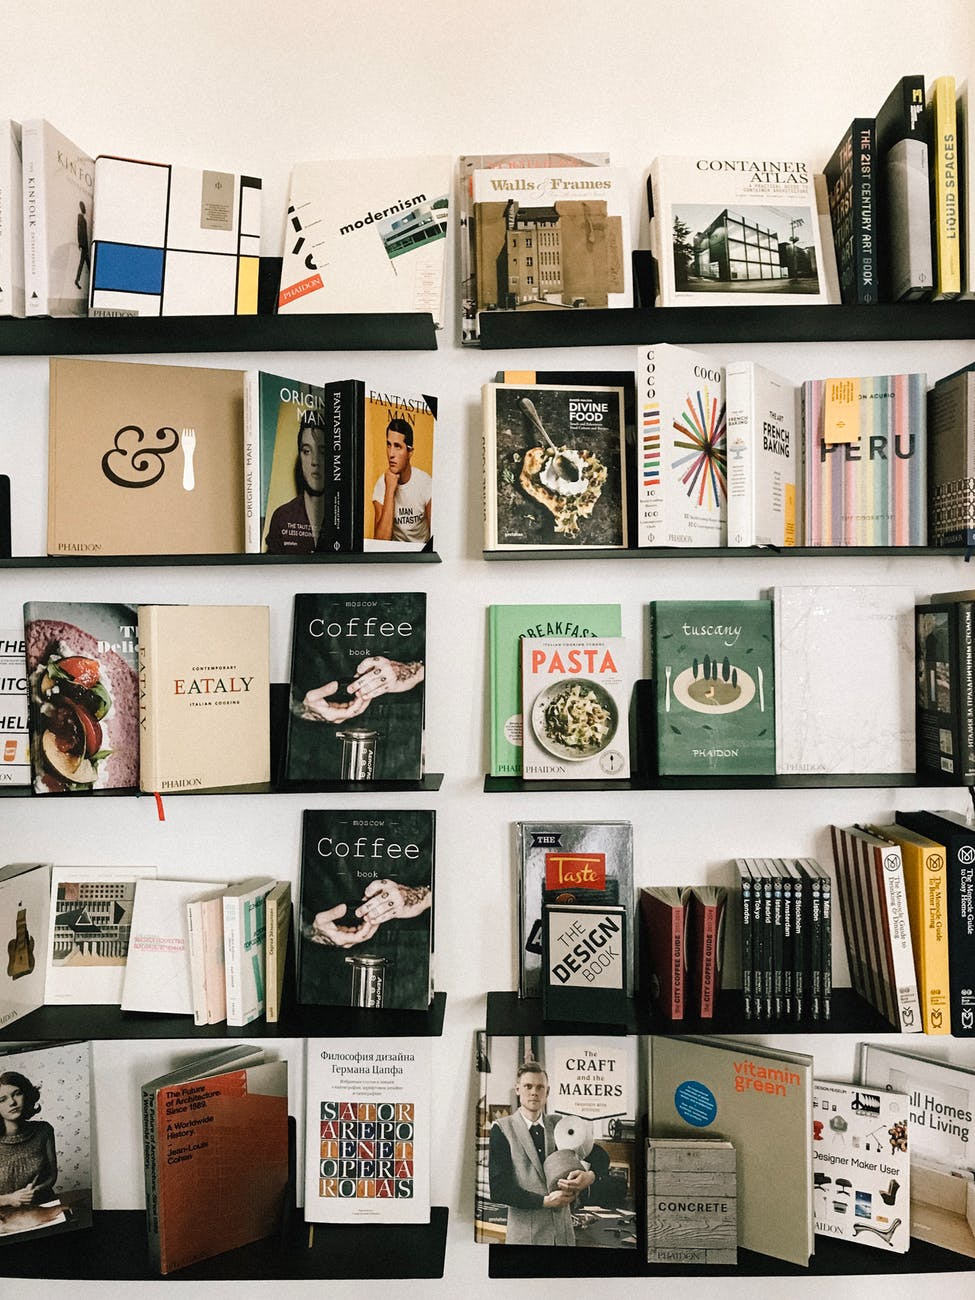 Eclectic Used Bookstore in the Heart of Great Shopping